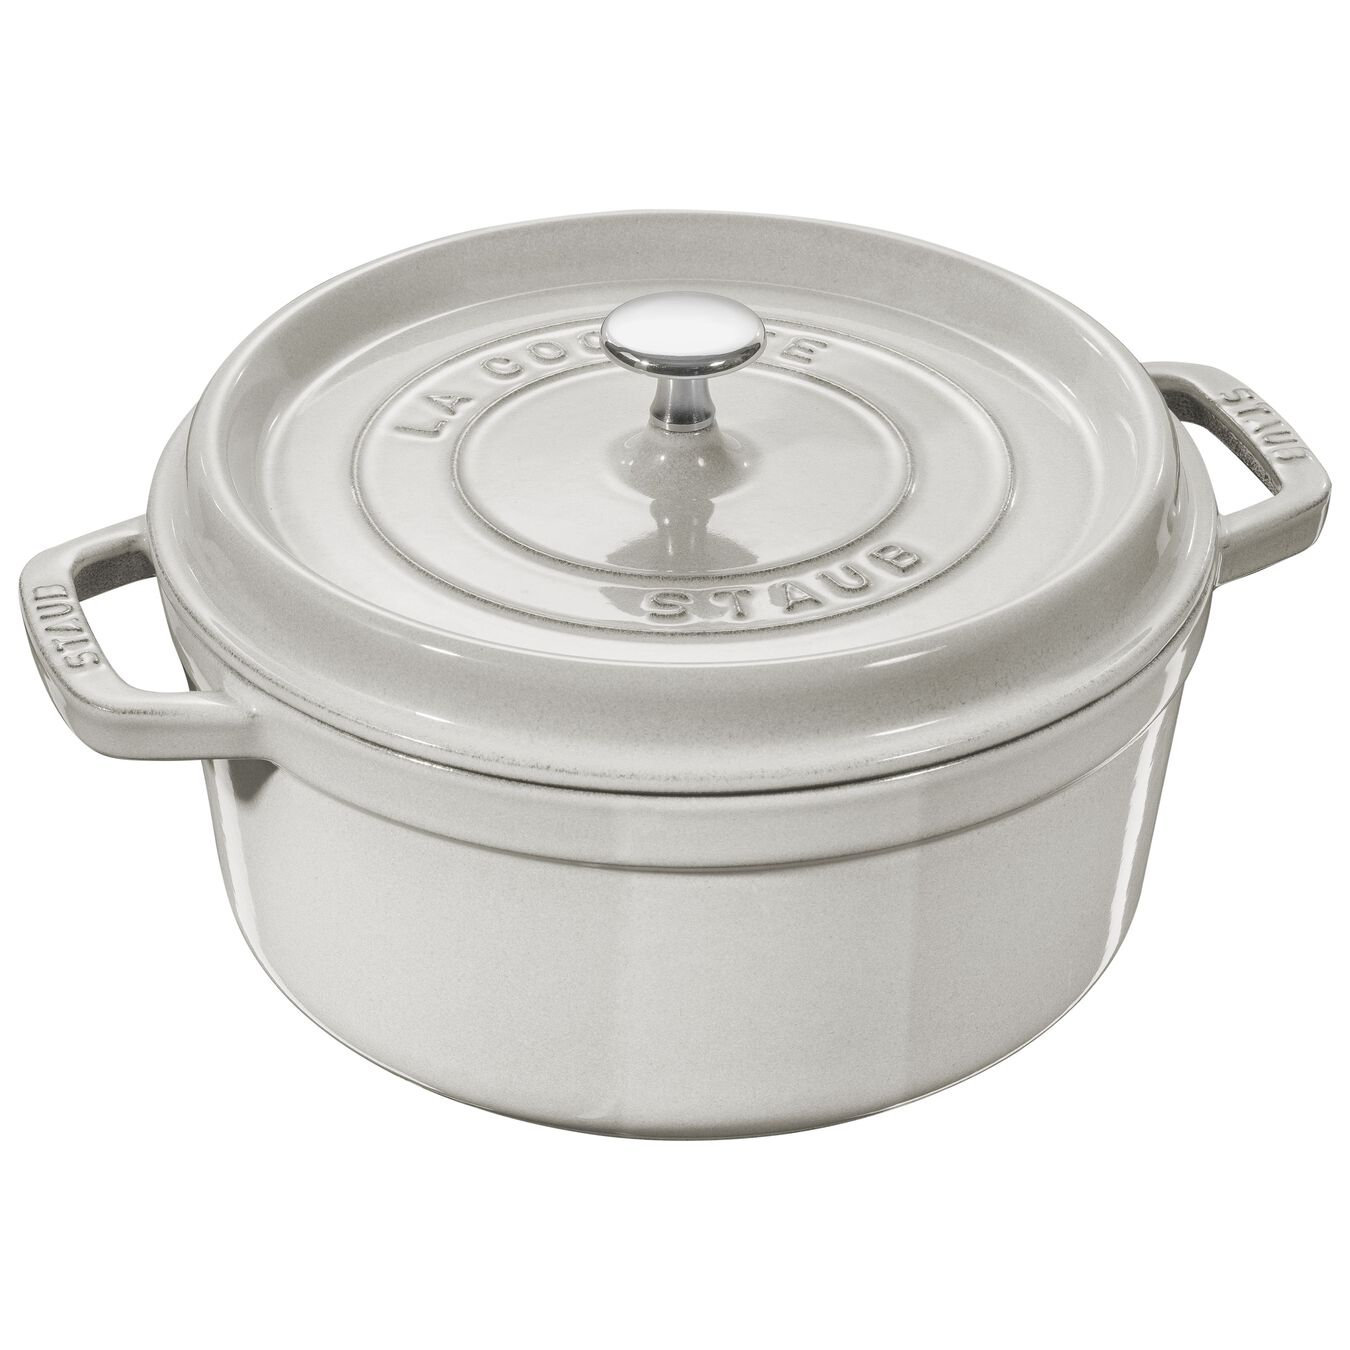 5.25 l Cast iron round Cocotte, White Truffle - Visual Imperfections,,large 1